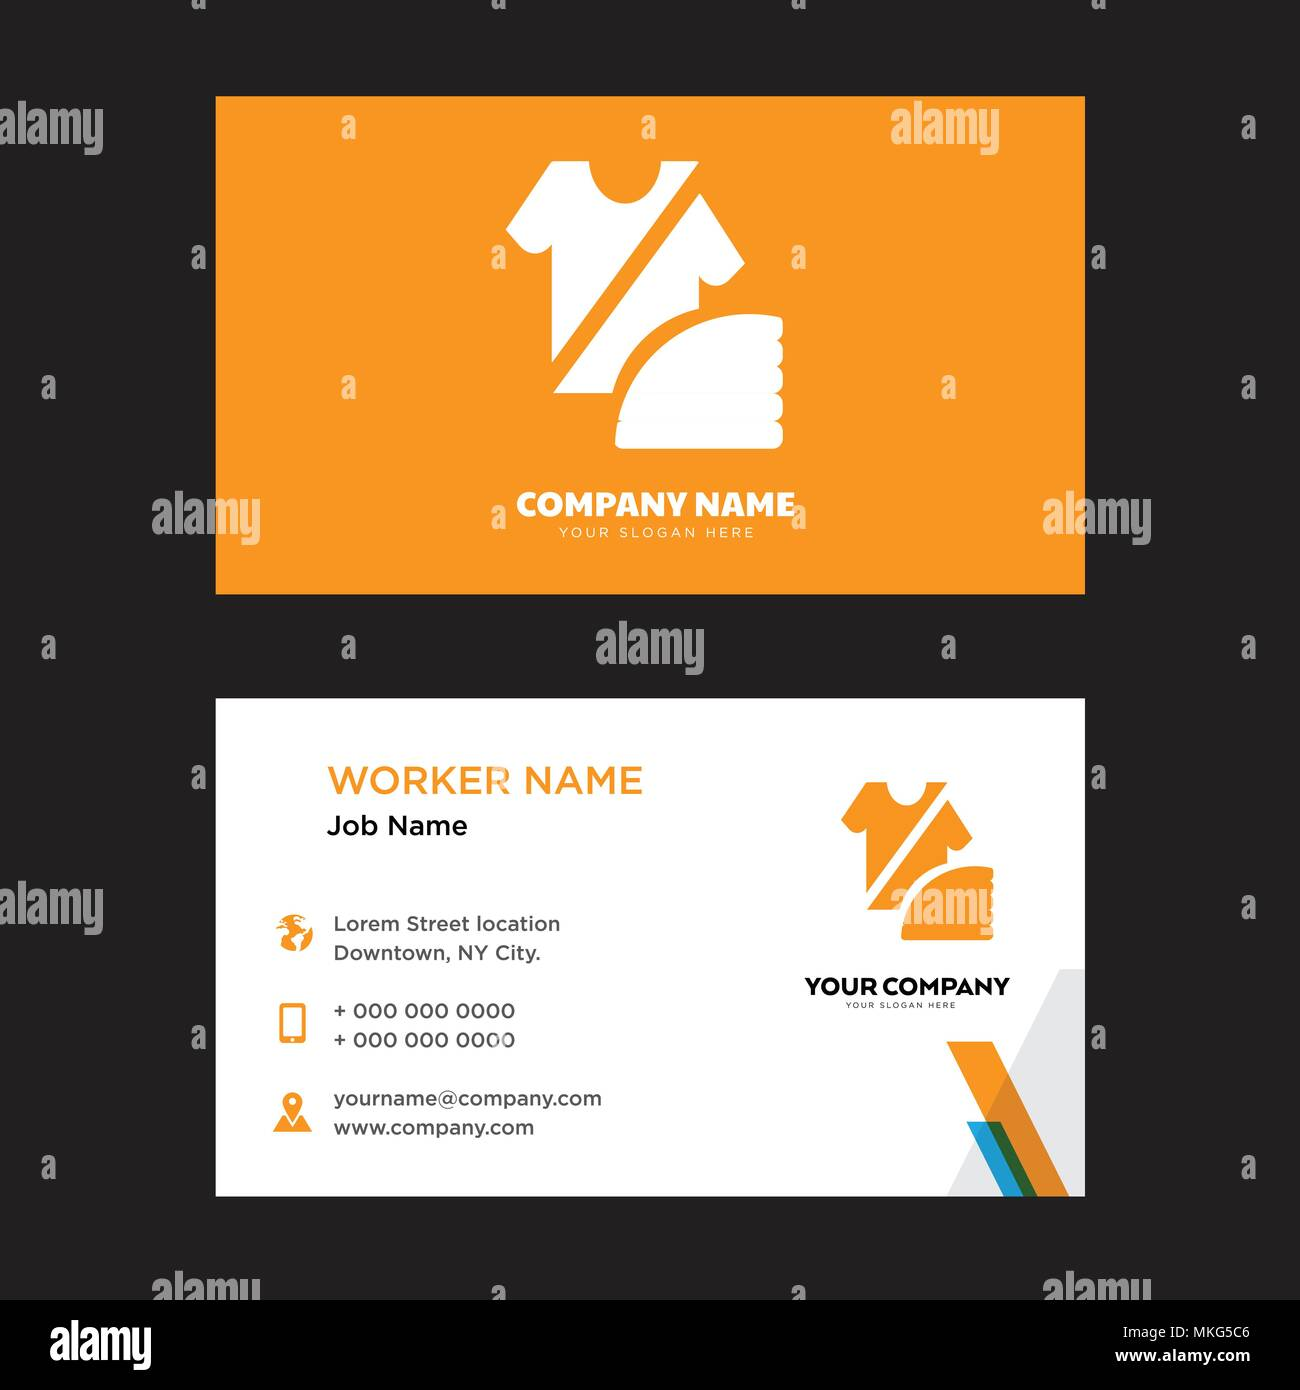 Fashion business card design template visiting for your company fashion business card design template visiting for your company modern horizontal identity card vector accmission Image collections